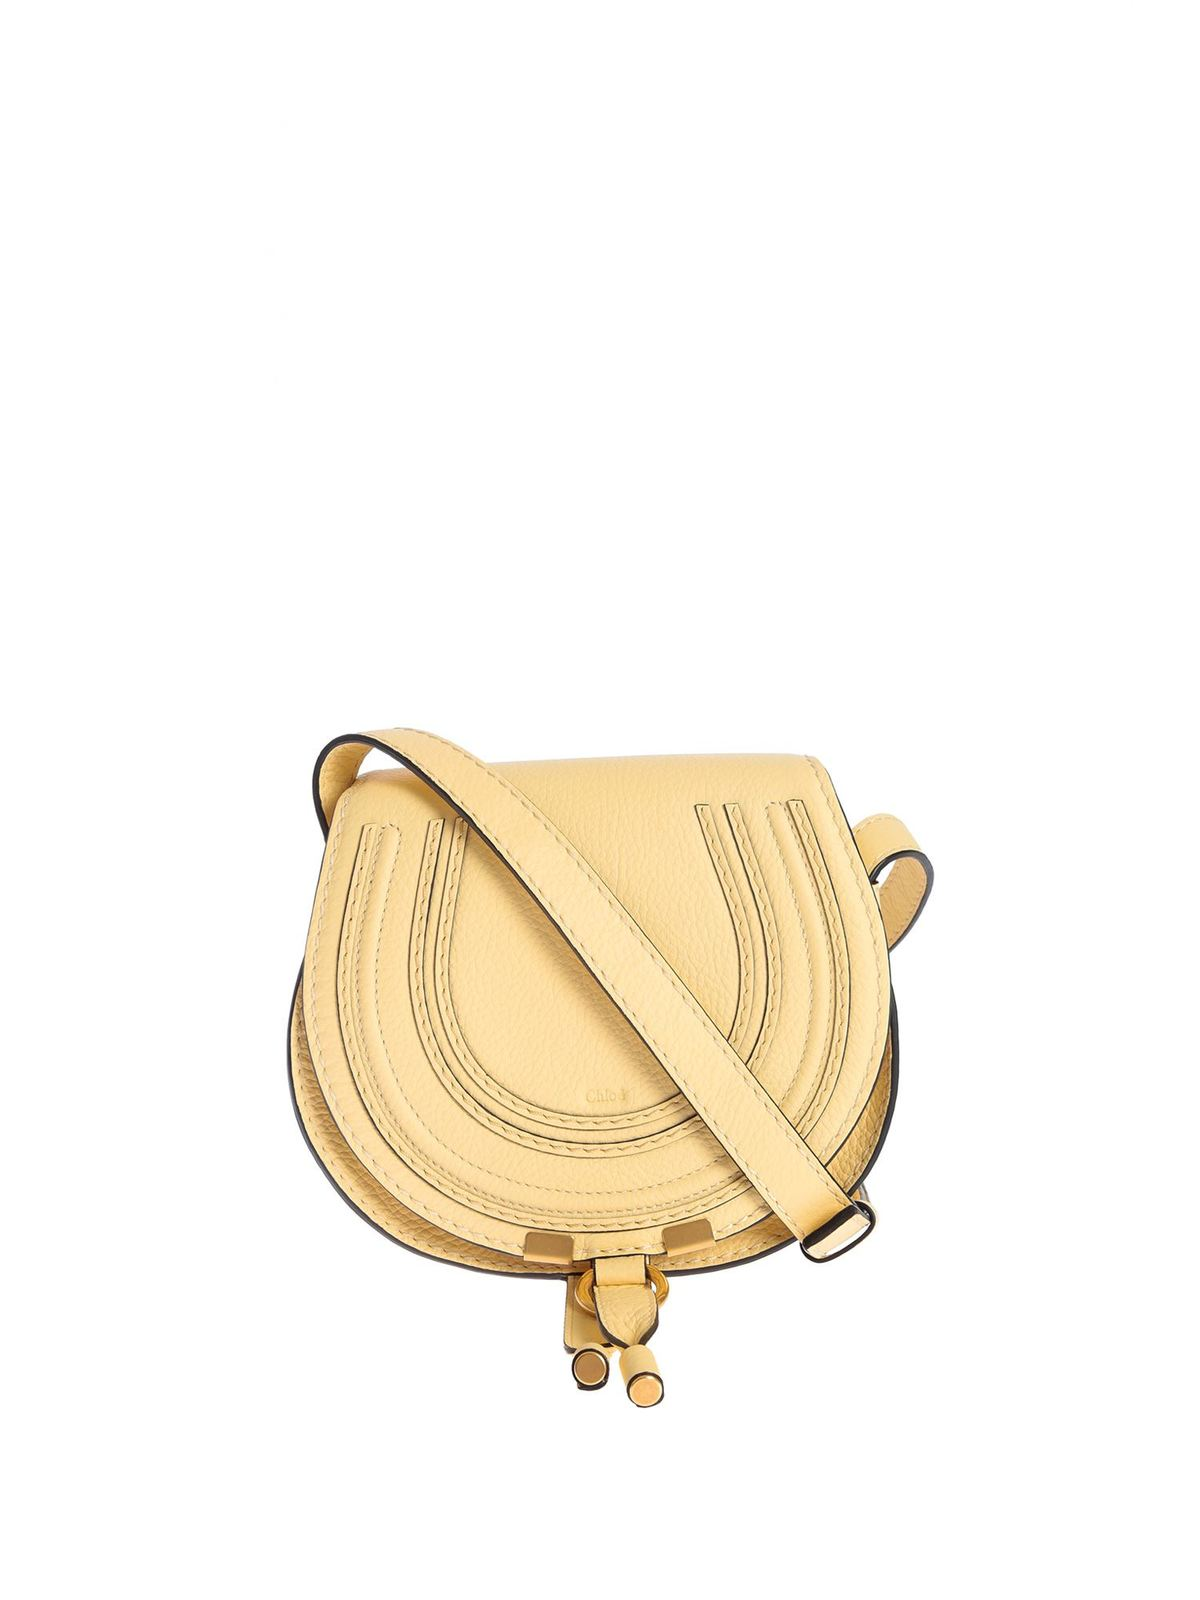 Chloé Canvases MARCIE MINI BAG IN SOFTY YELLOW